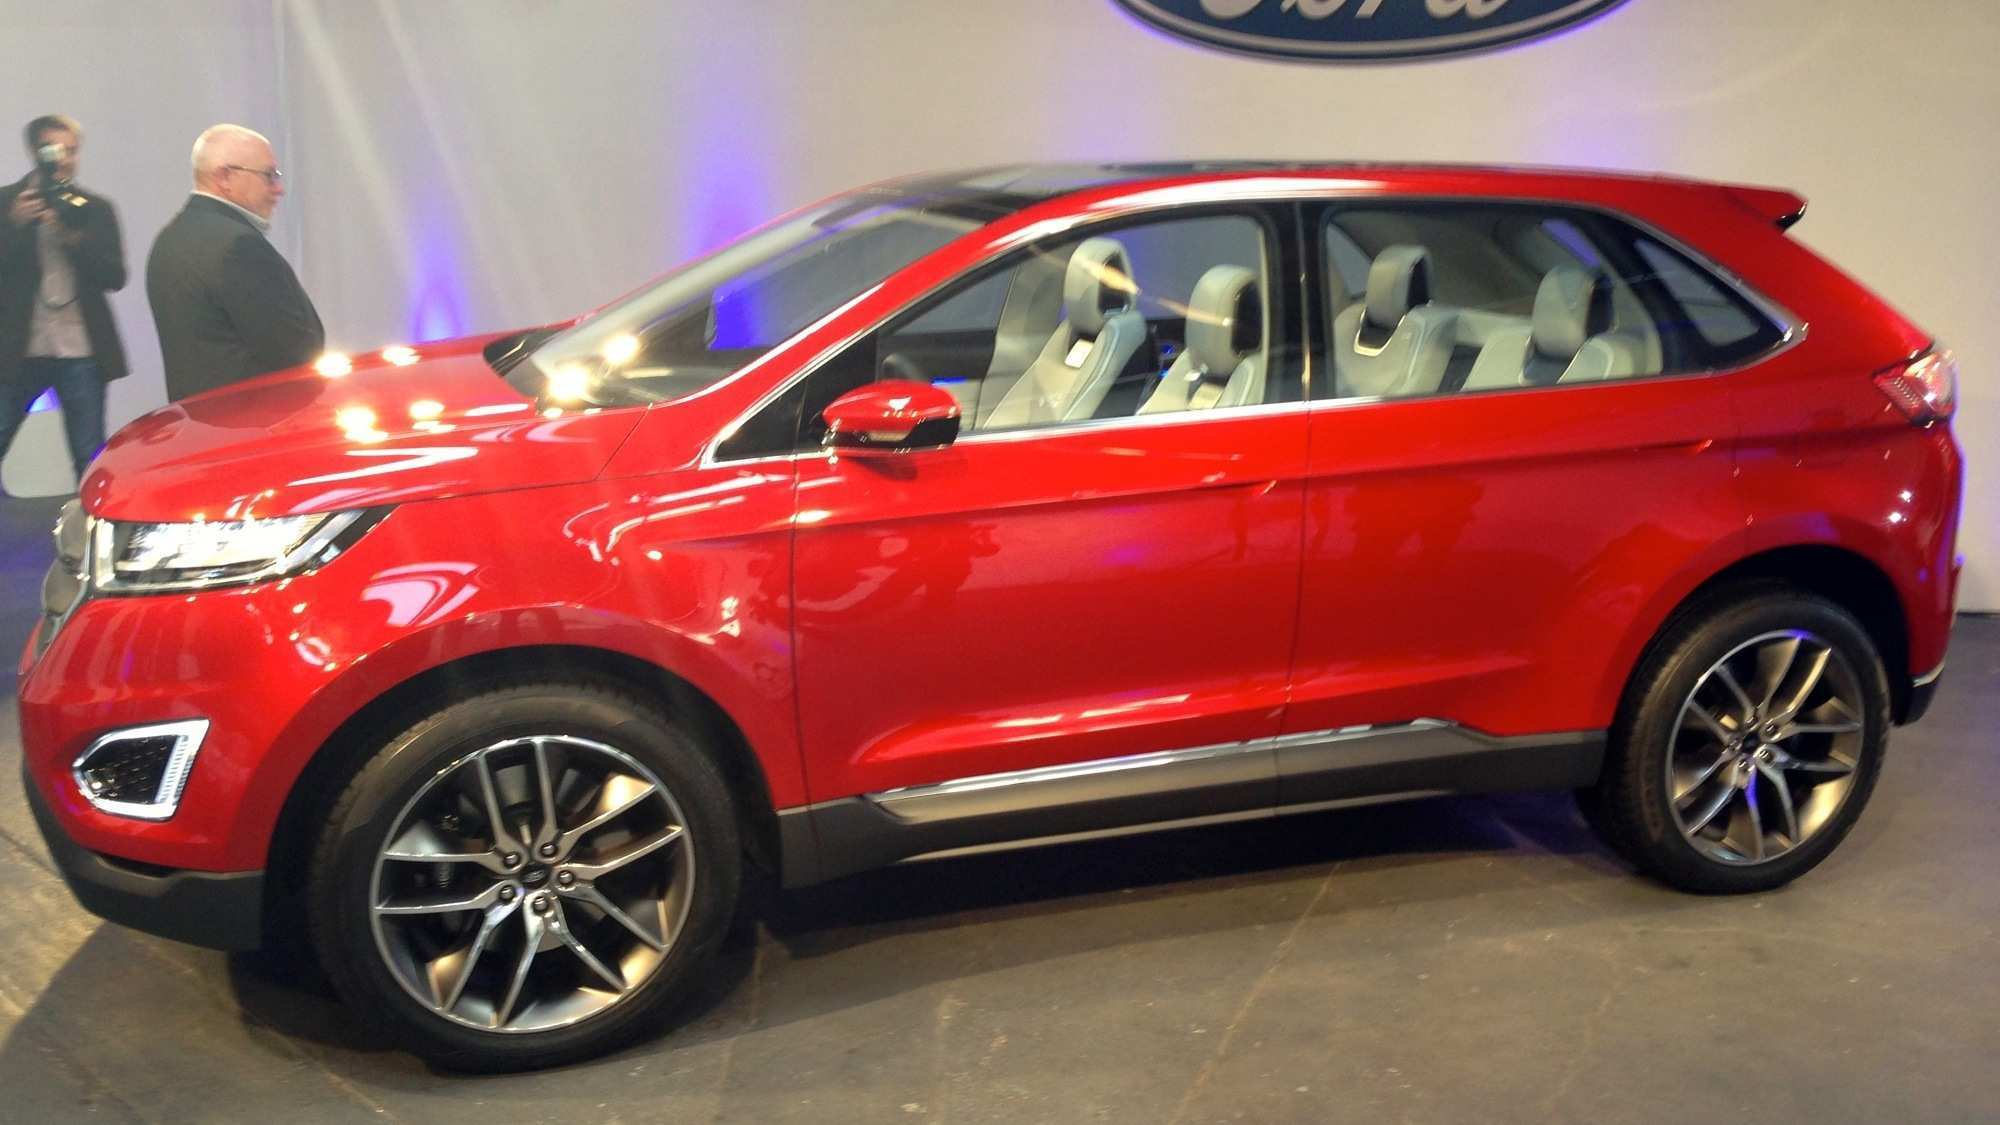 83 A Ford Edge New Design Reviews